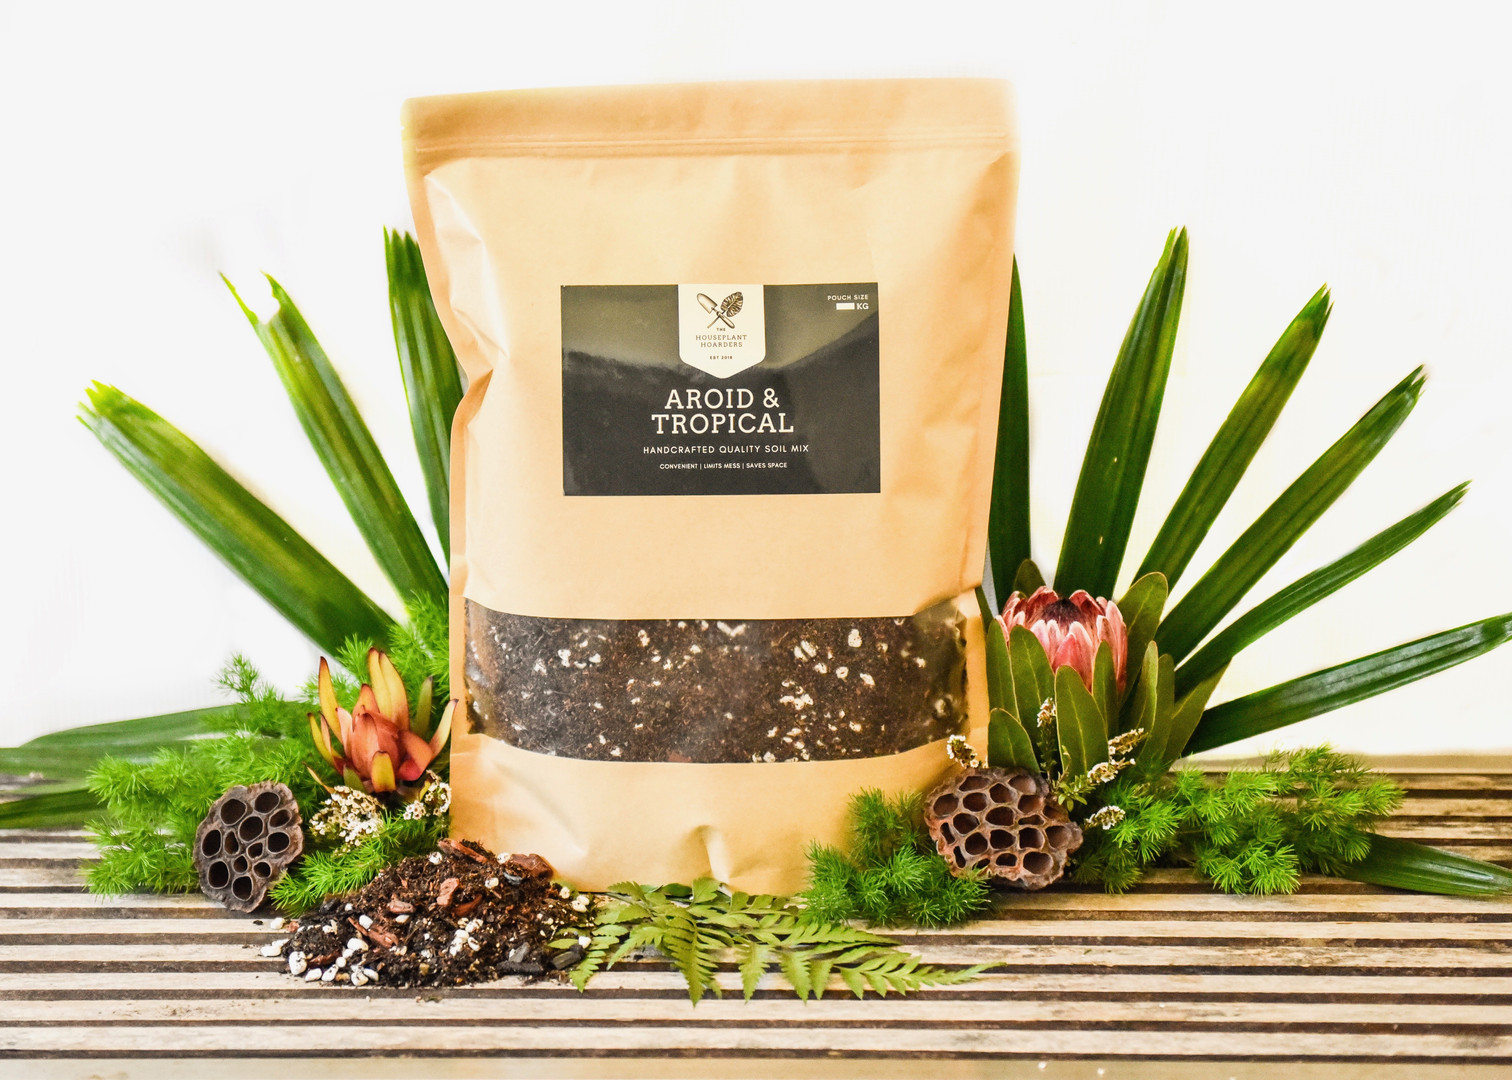 The Hoarders Plant Care Aroid & Tropical MIx